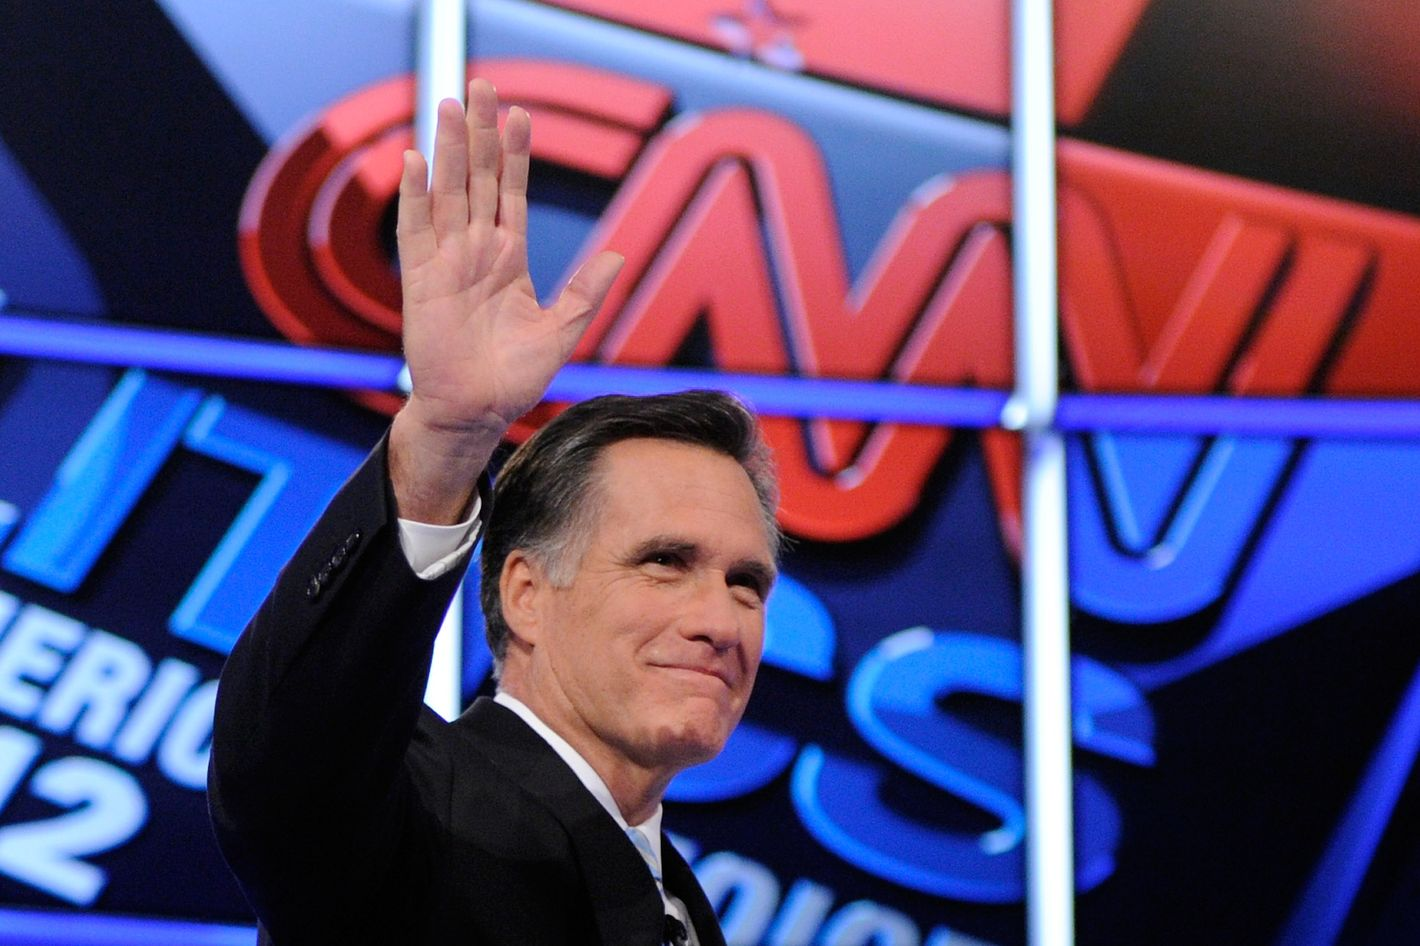 MESA, AZ - FEBRUARY 22:  Republican presidential candidate, former Massachusetts Gov. Mitt Romney waves as he is introduced at a debate sponsored by CNN and the Republican Party of Arizona at the Mesa Arts Center February 22, 2012 in Mesa, Arizona. The debate is the last one scheduled before voters head to the polls in Michigan and Arizona's primaries on February 28 and Super Tuesday on March 6.  (Photo by Ethan Miller/Getty Images)